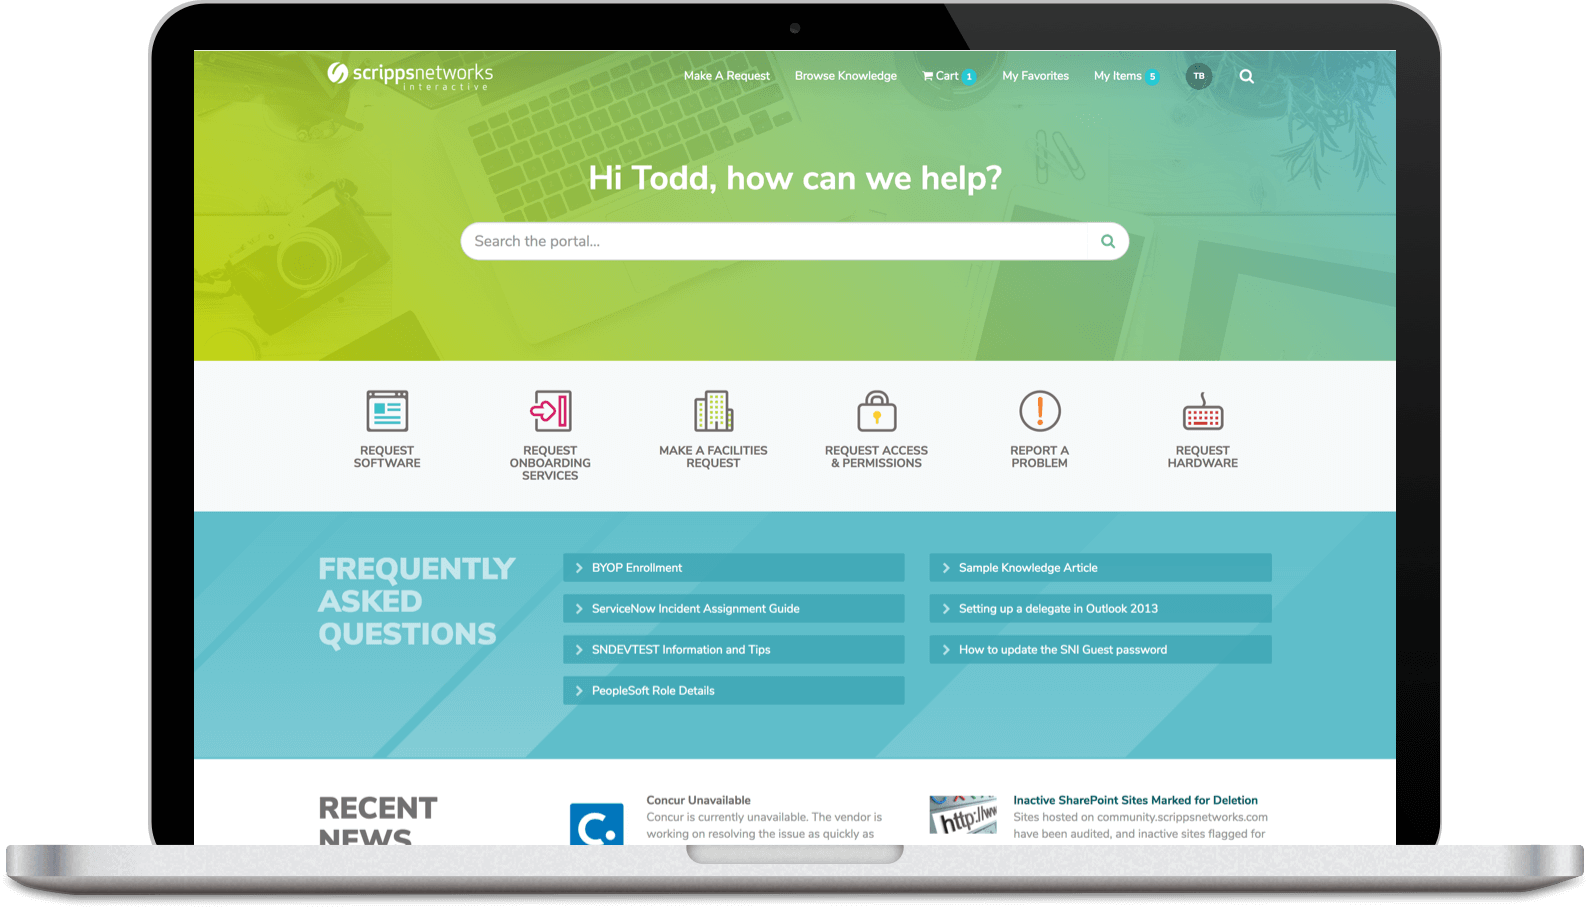 Service Portal Design for Scripps